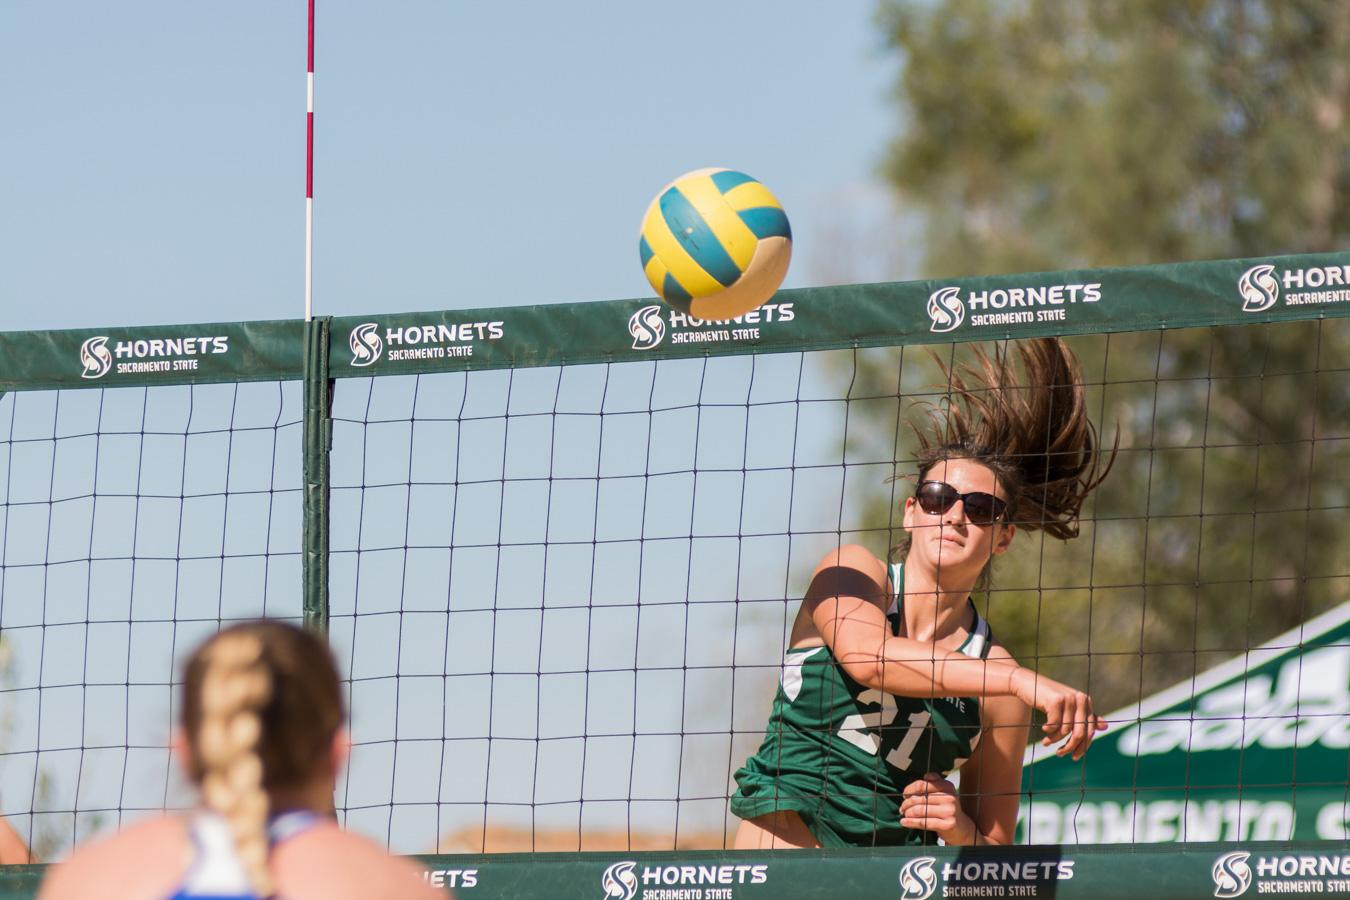 Sacramento State senior Madeline Cannon spikes the ball for a point against Boise State Sunday at the Livermore Community Park. (Photo by Matthew Dyer)